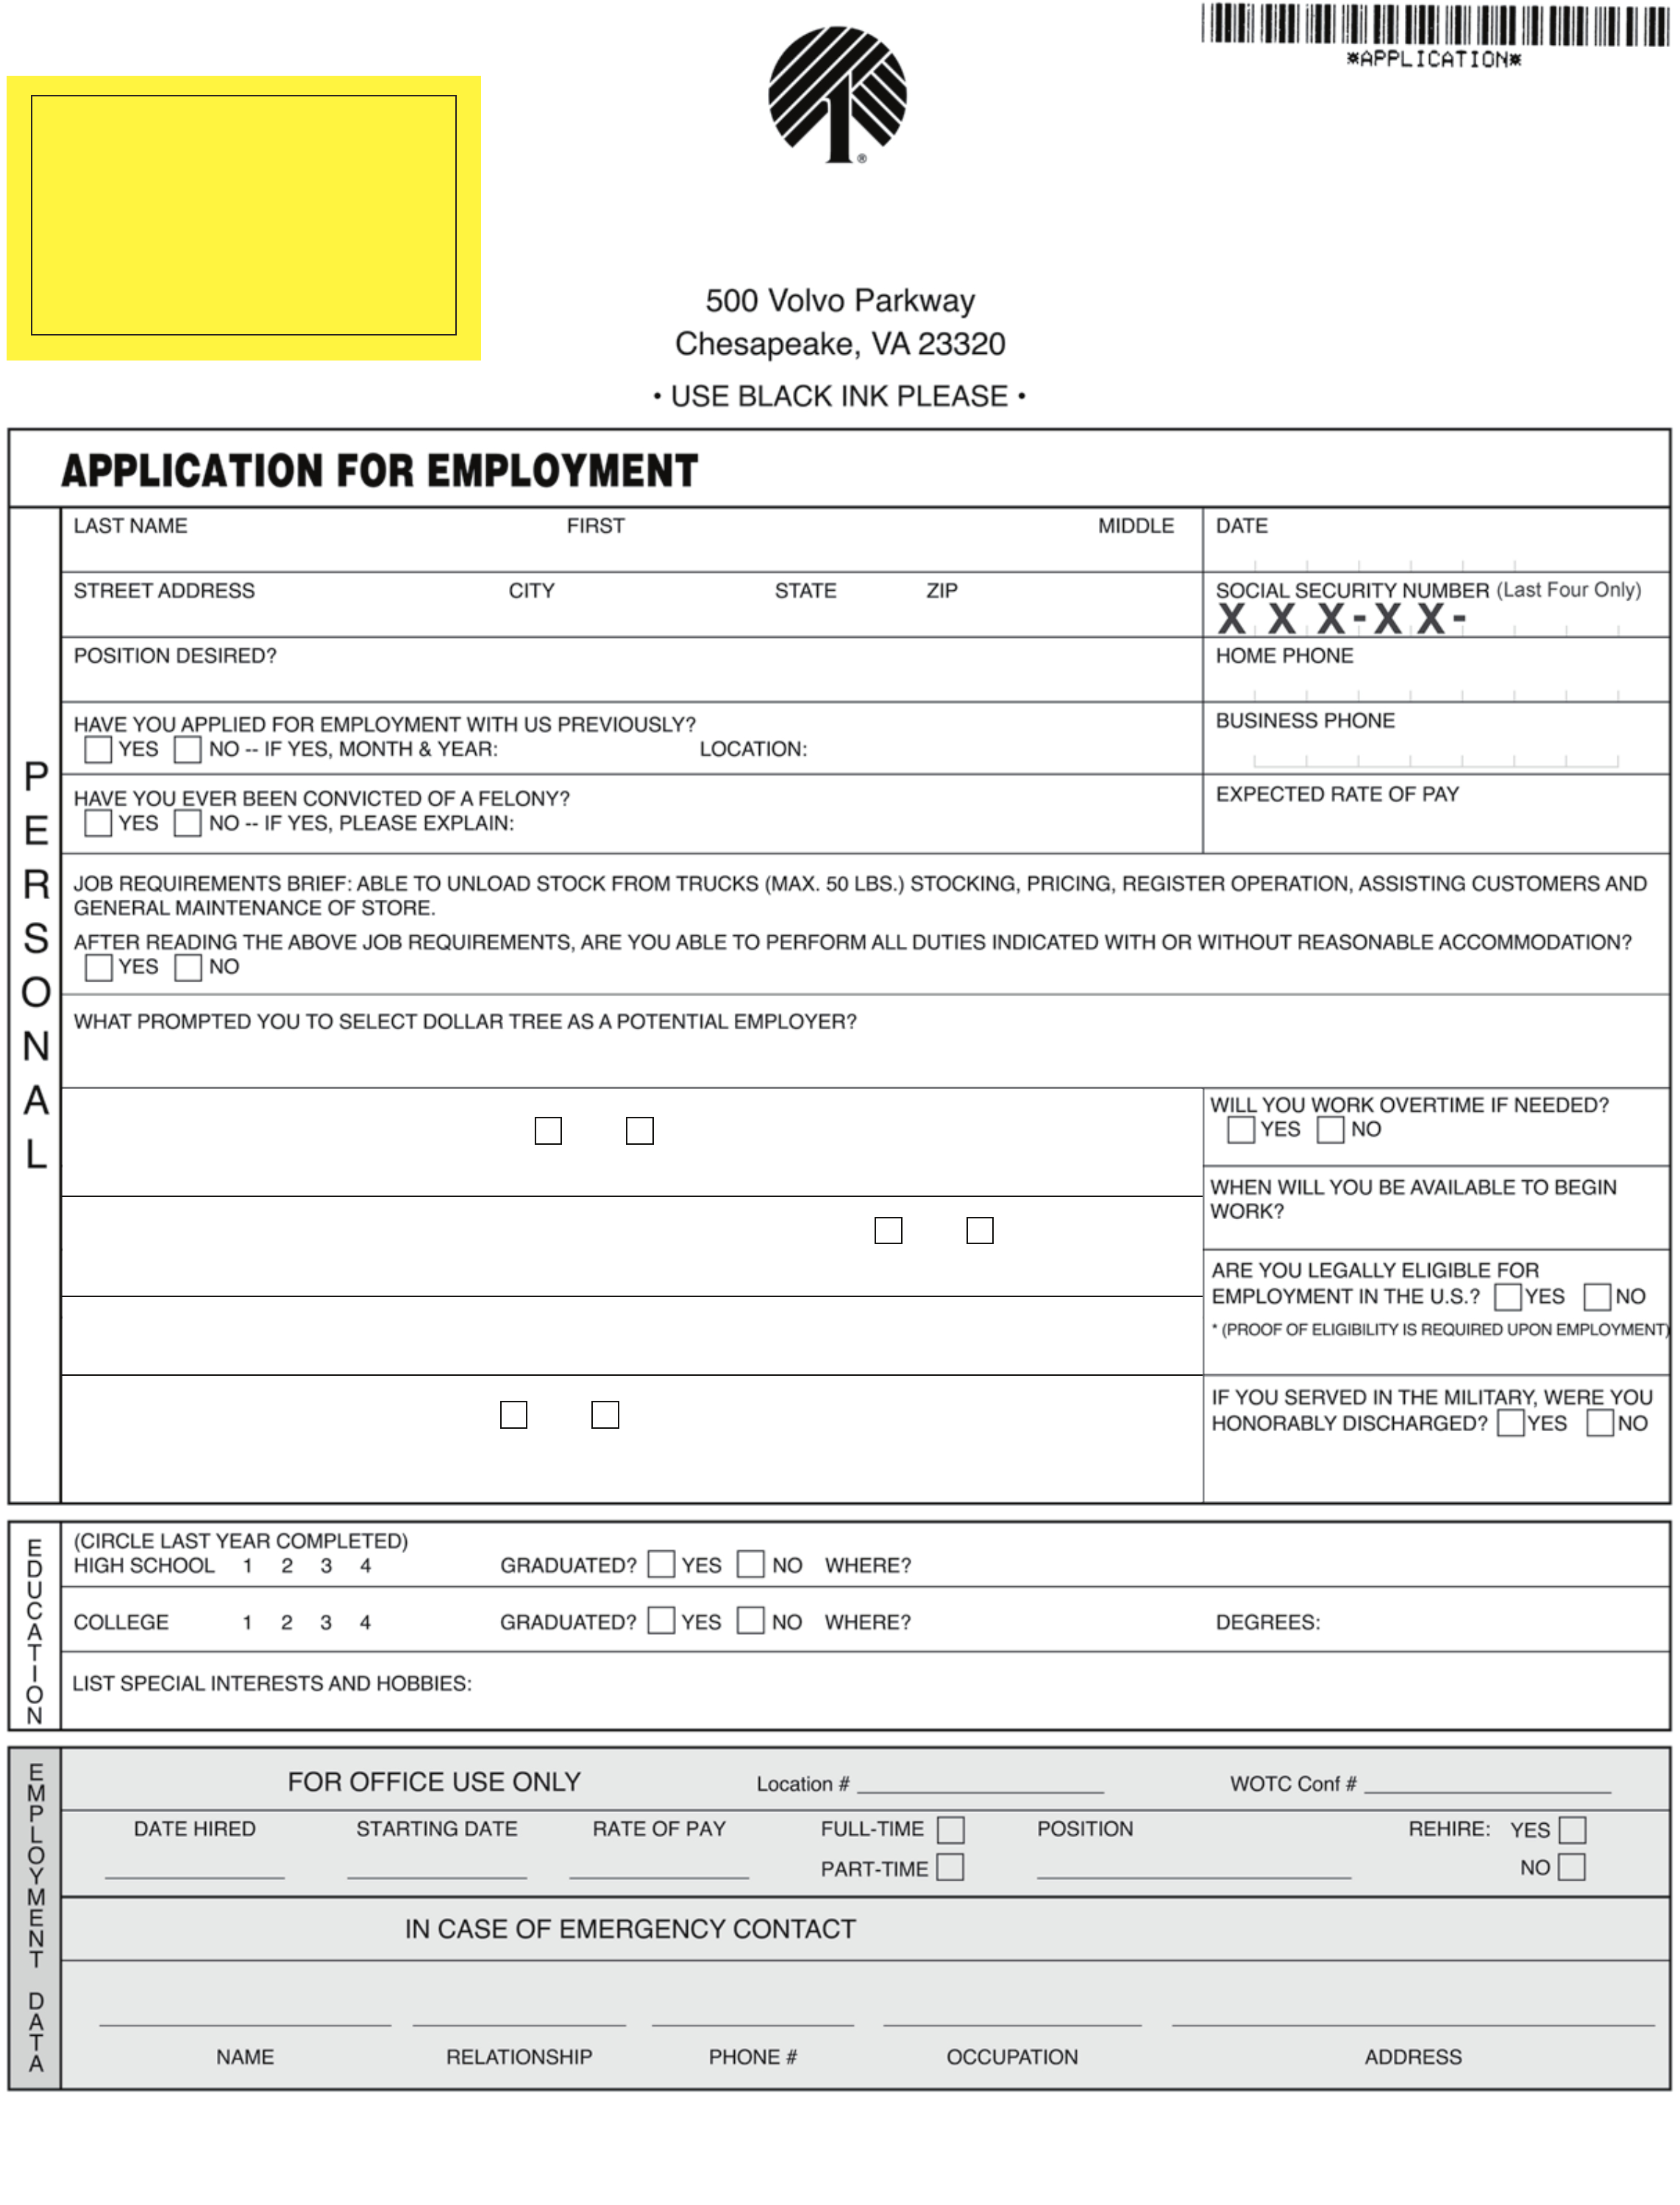 Dollar Tree Job Application Dollar Tree Job Application Form To - Free Printable Dollar Tree Application Form